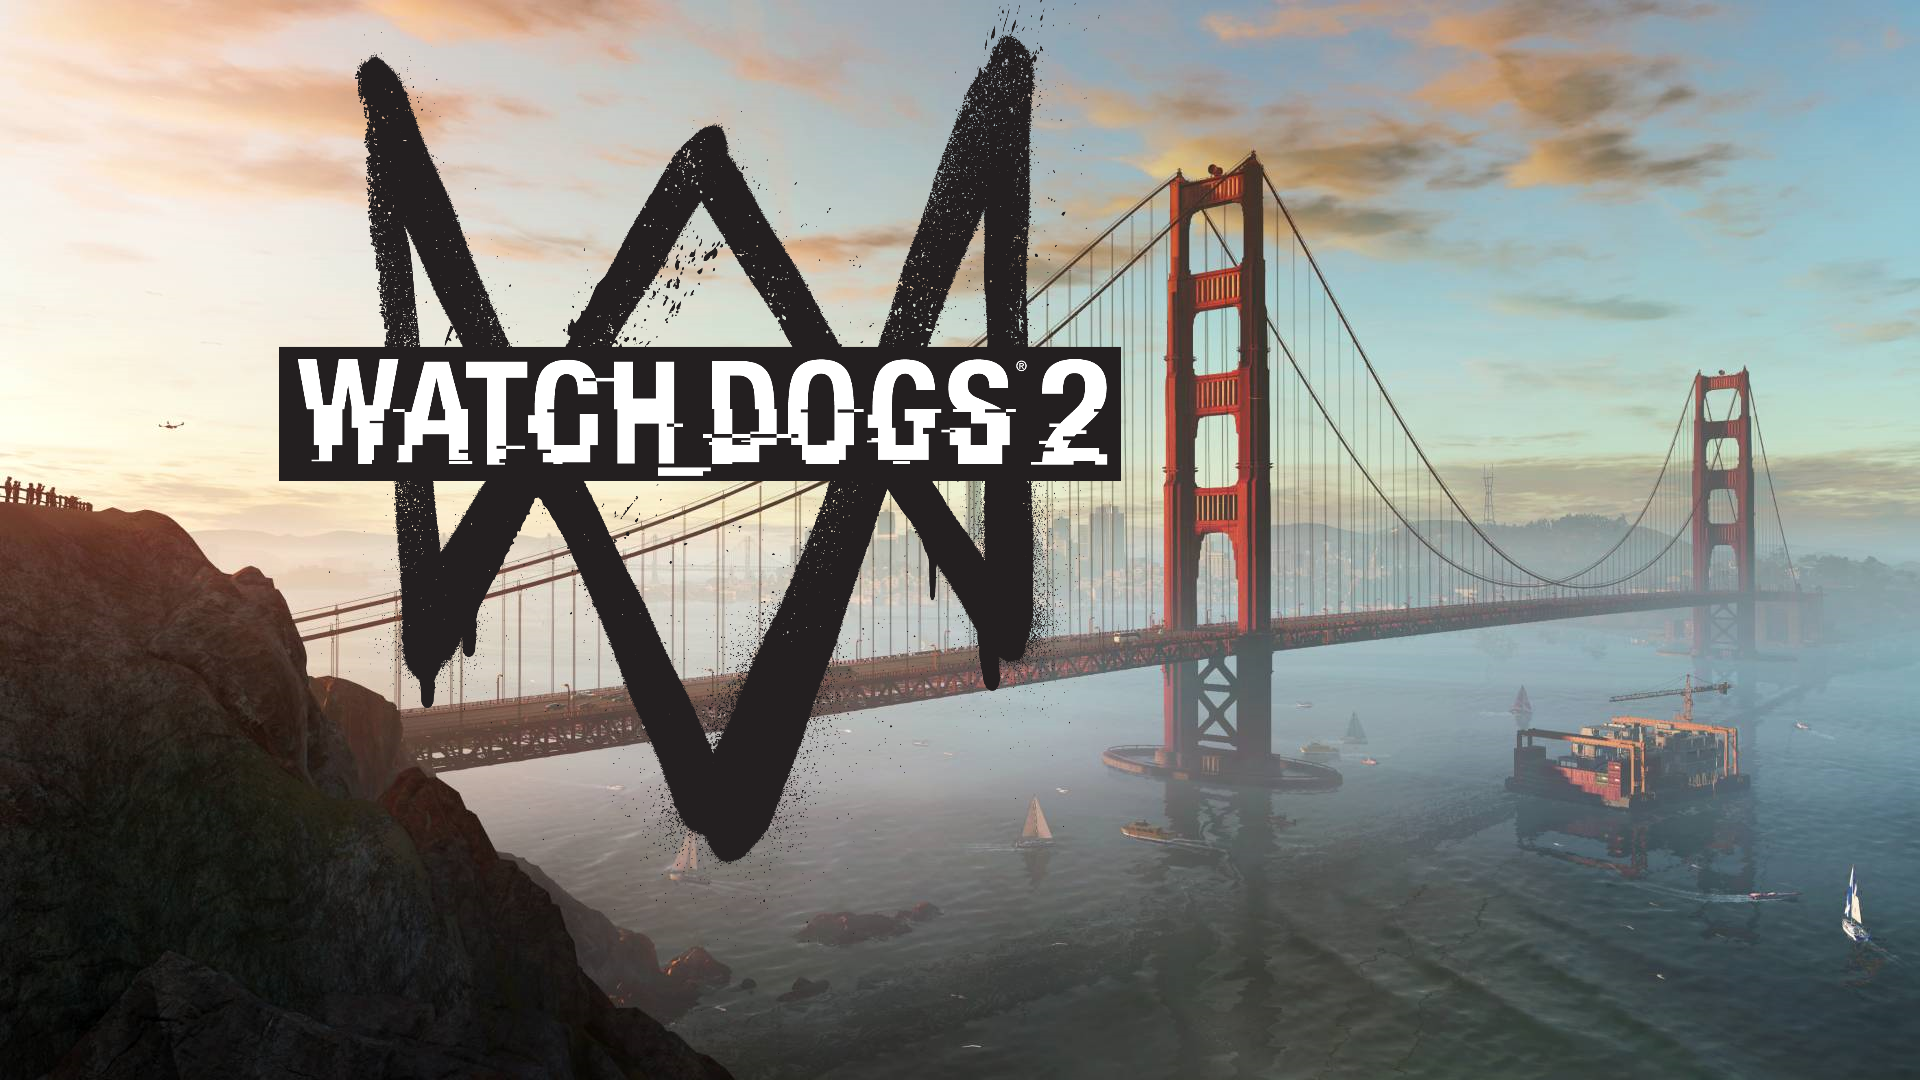 Free Download Watch Dogs 2 Full Hd Wallpaper And Background